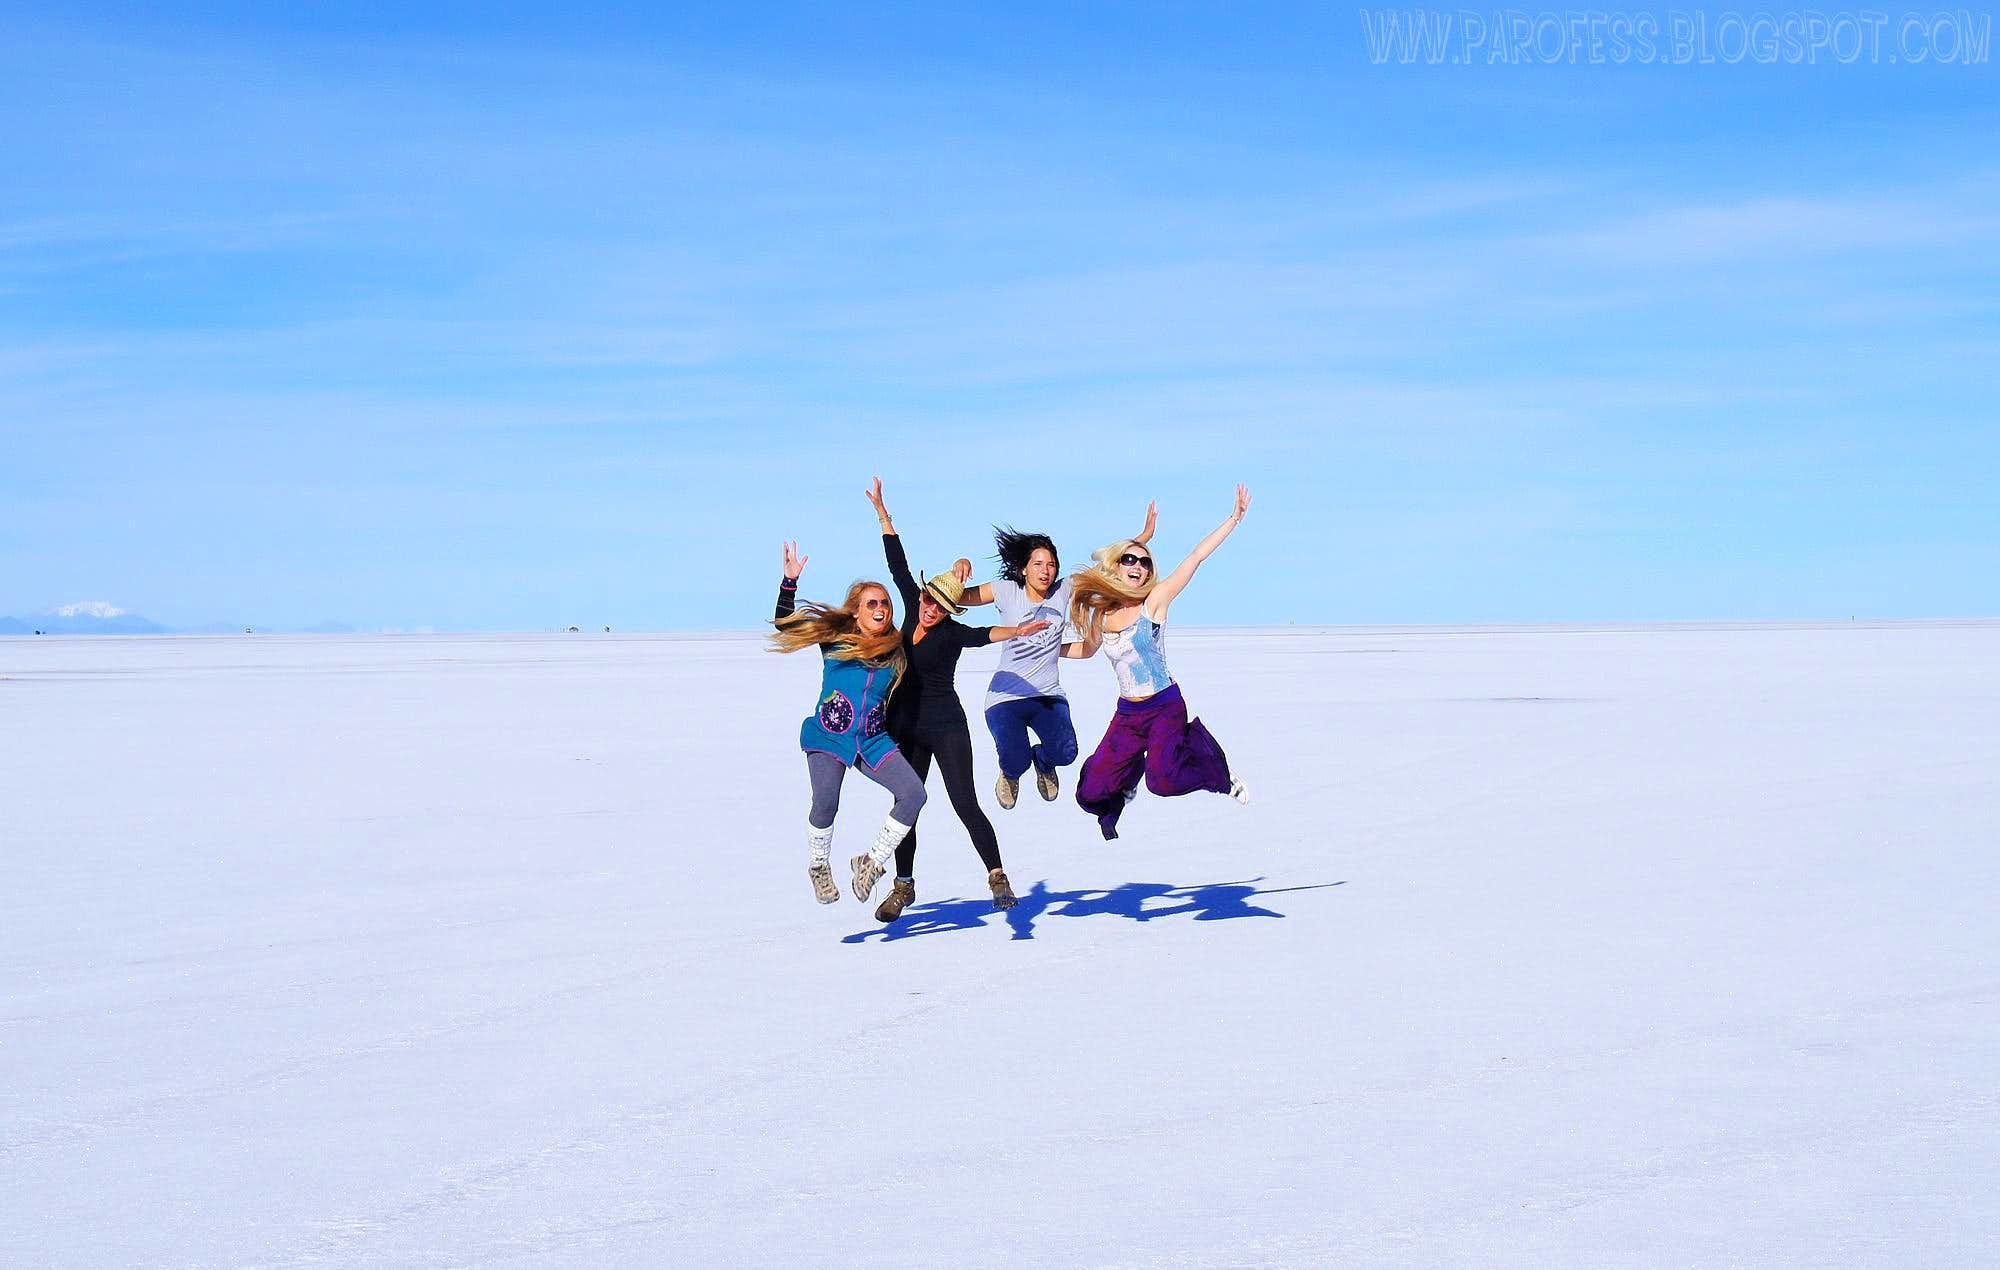 Uyuni Salt Flat - Biggest mirror on Earth